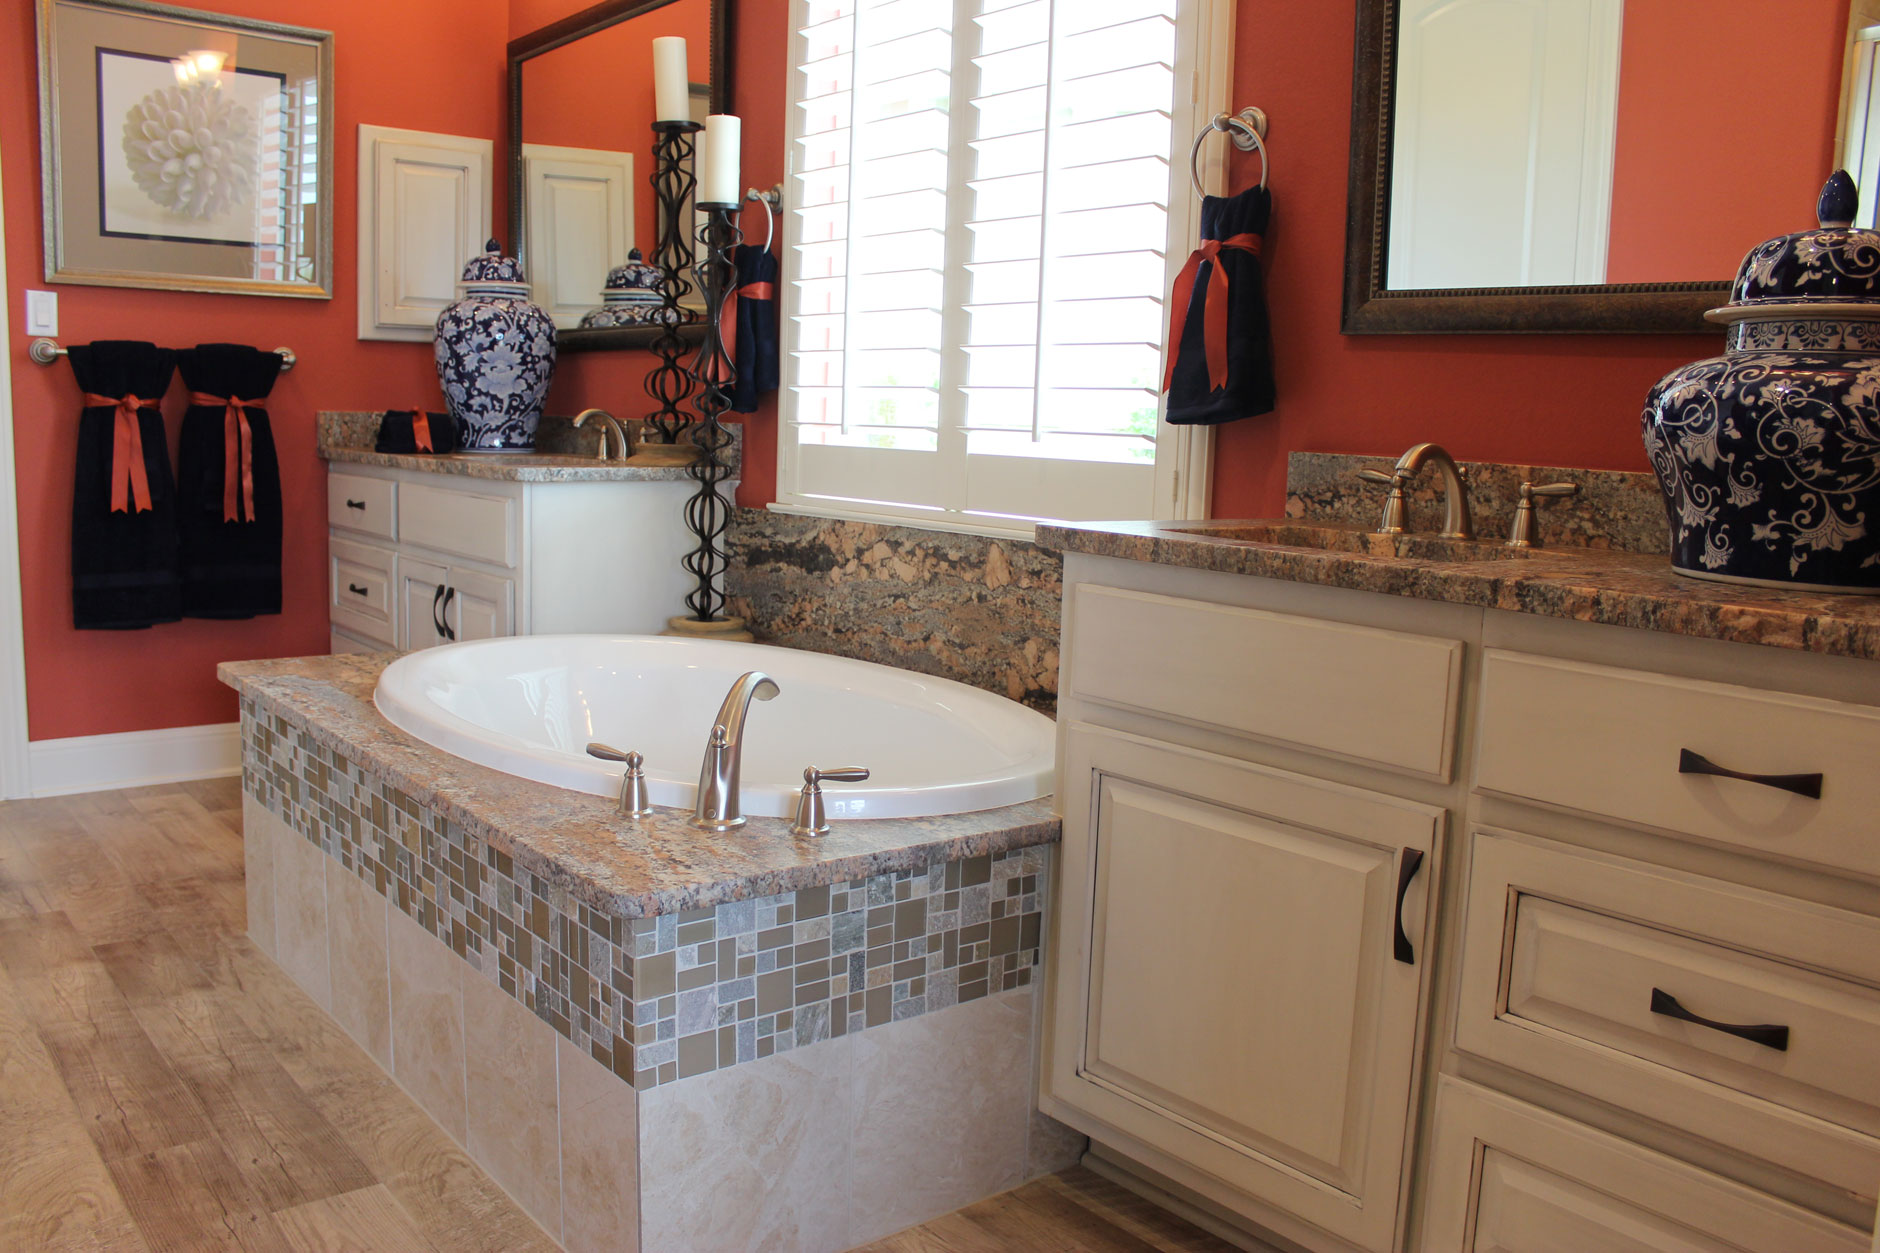 Master bath with center tub and cabinets in bone with black glaze by Burrows Cabinets